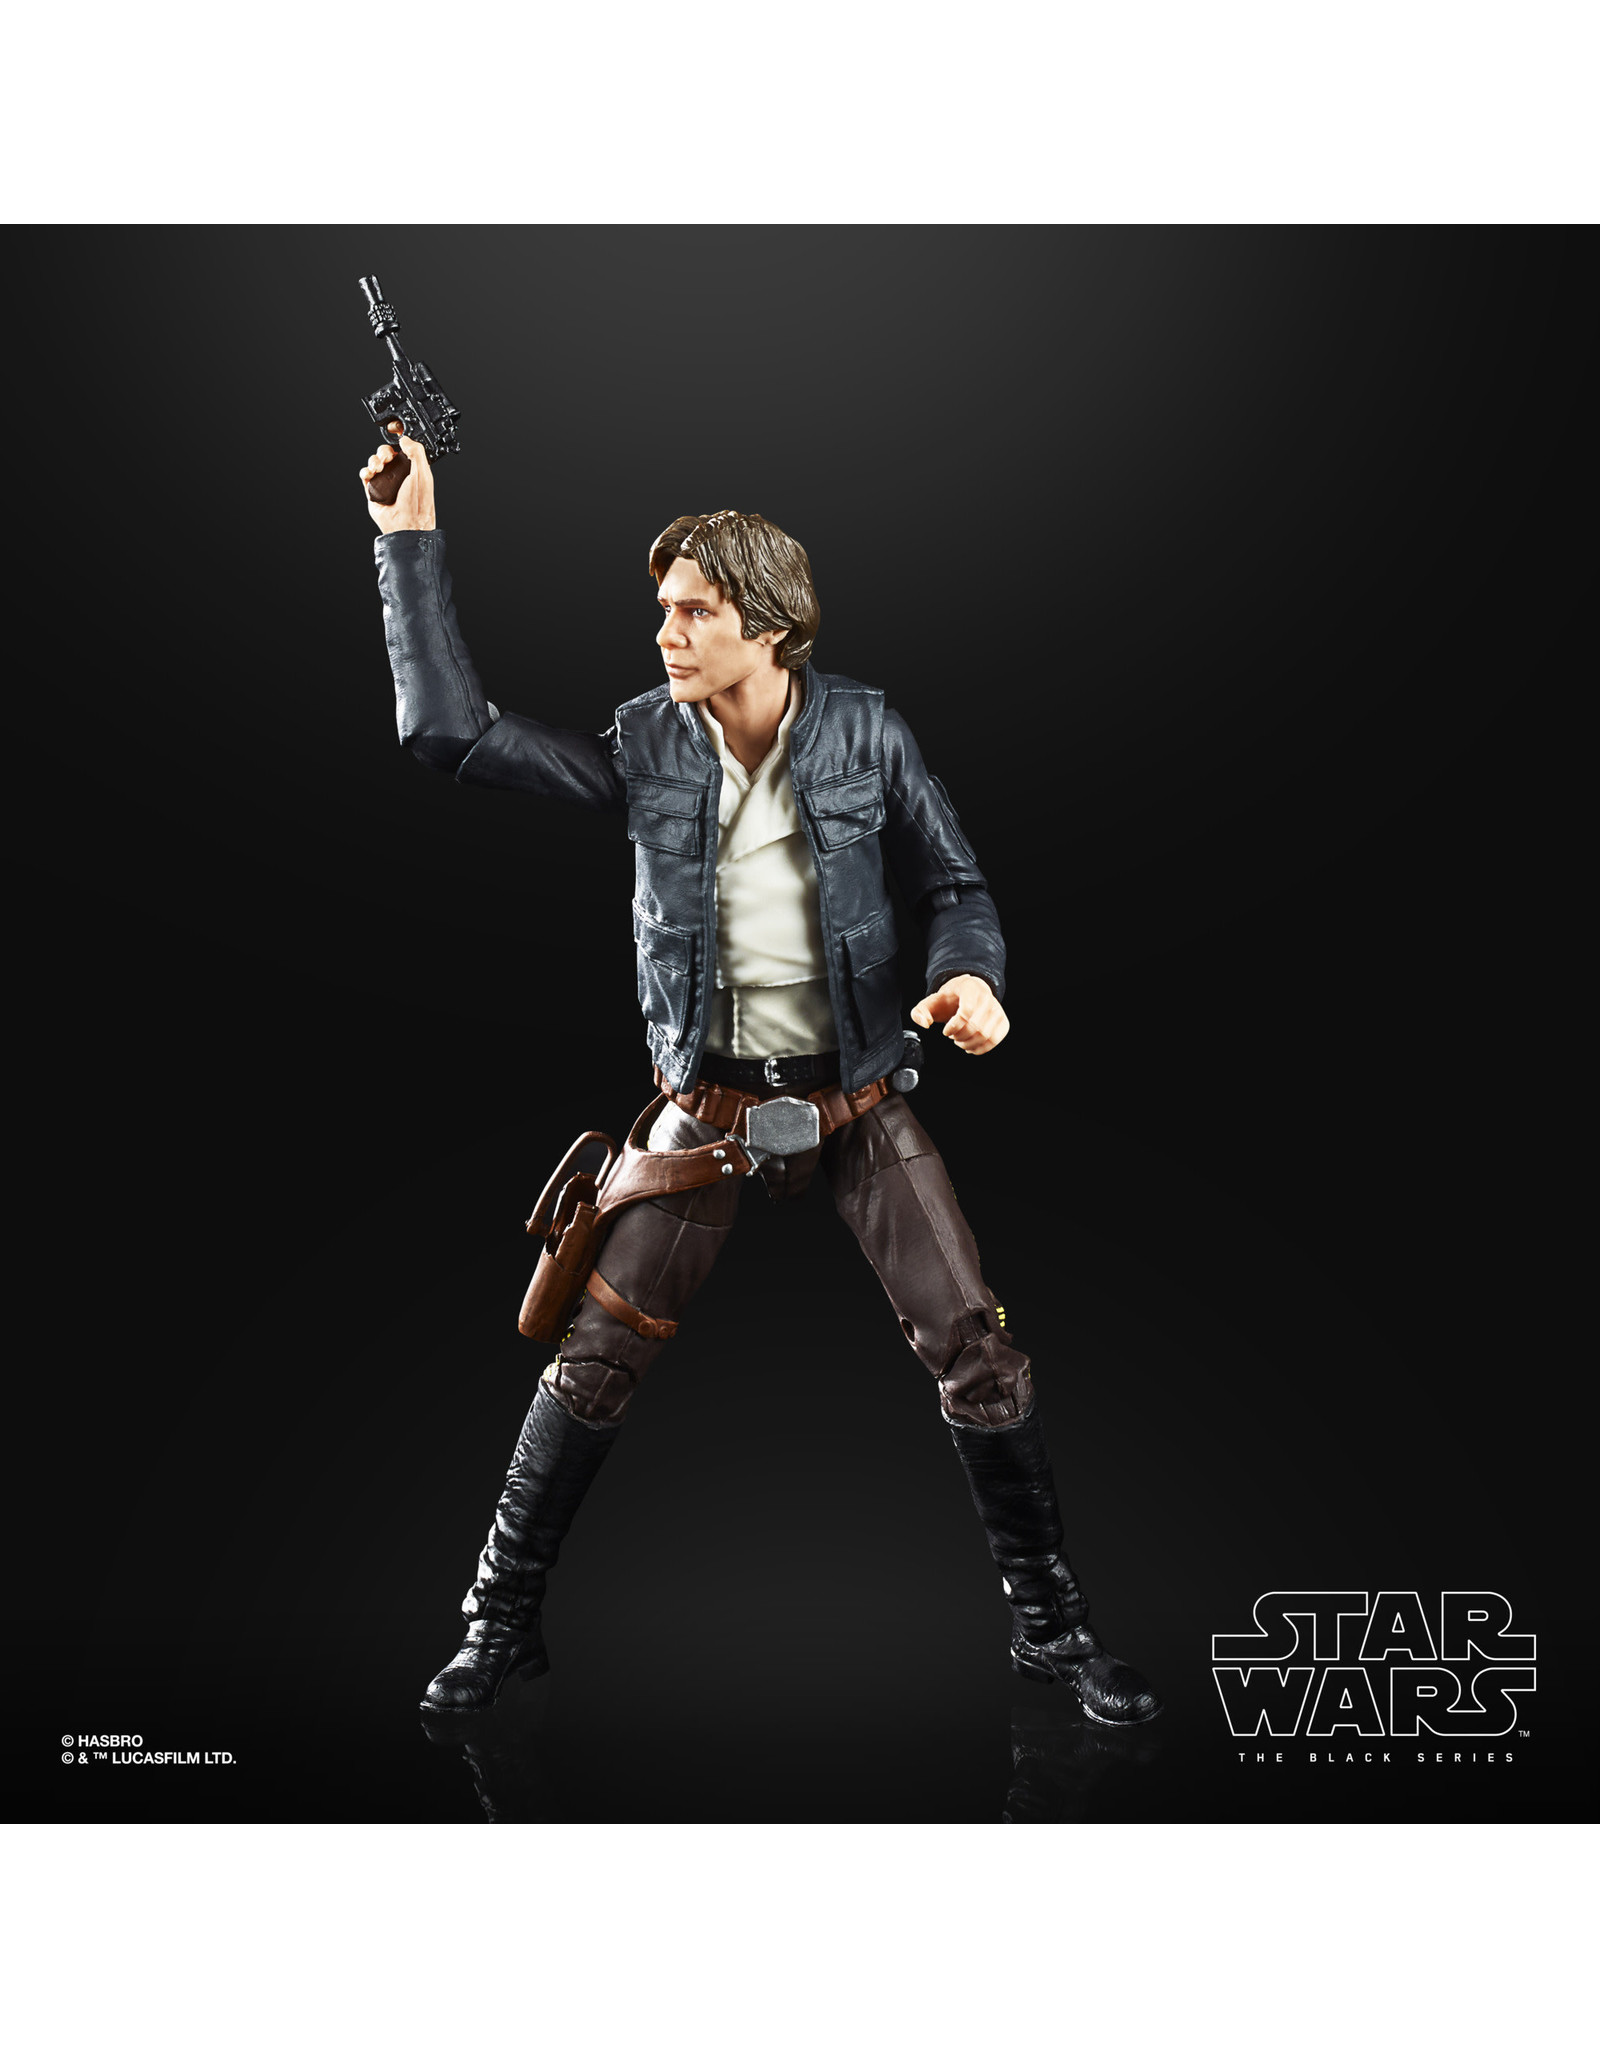 Hasbro Star Wars the Black Series Han Solo (Bespin) Toy Action Figure, Accessory